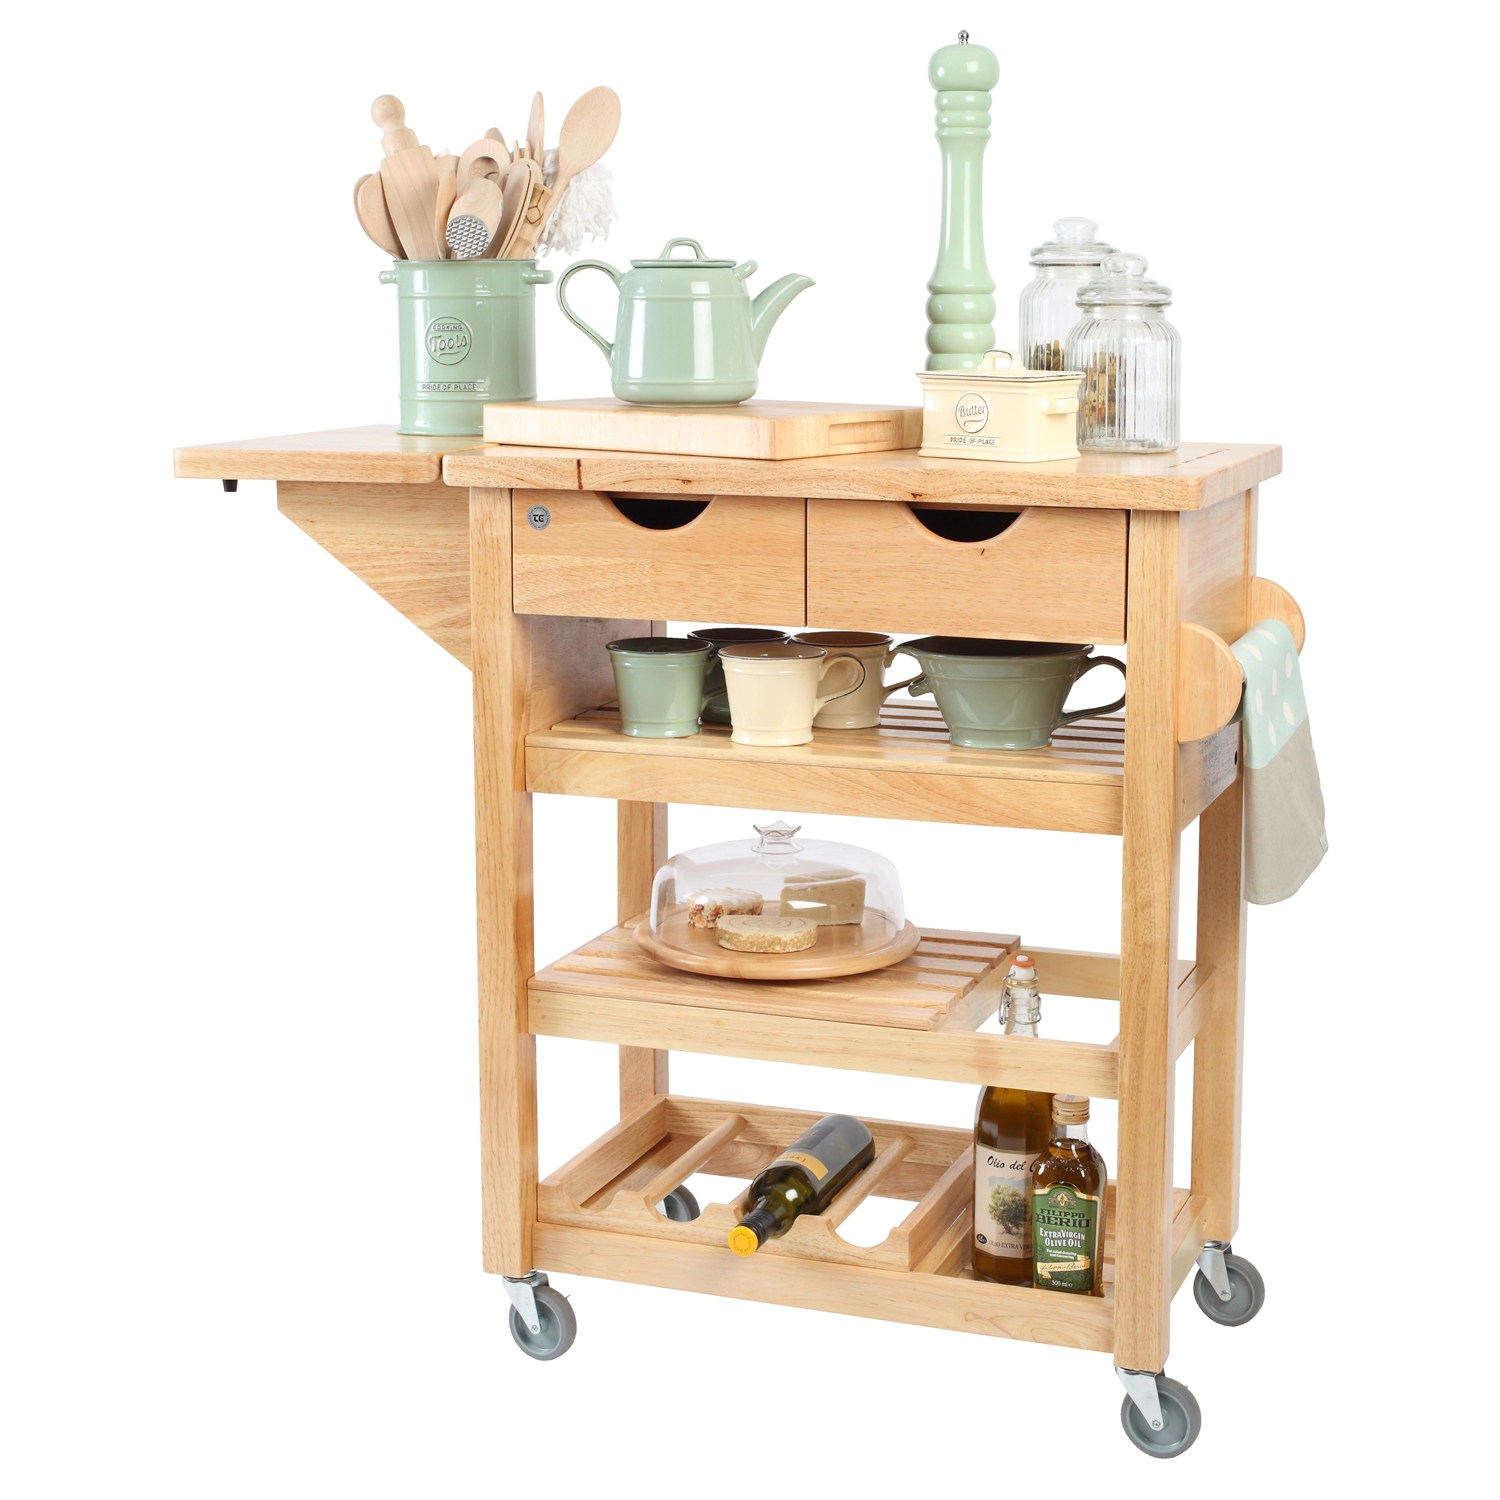 Image of T&G Woodware Viva Trolley Flatpack